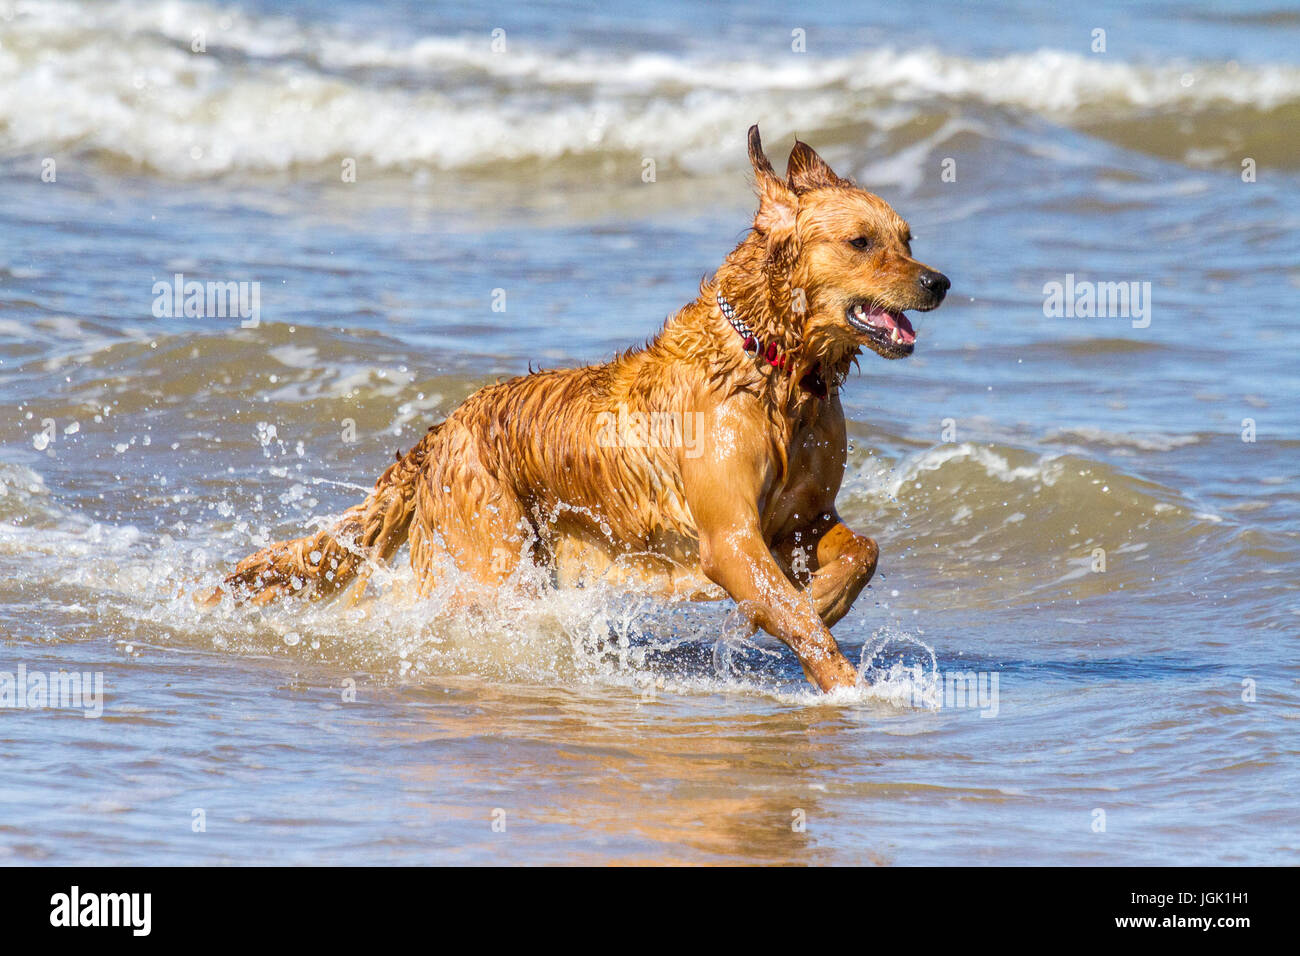 Southport, Merseyside. Doggies Day Out. 8th July 2017. UK Weather.  Gorgeous 2 year old working Golden Retriever Stock Photo